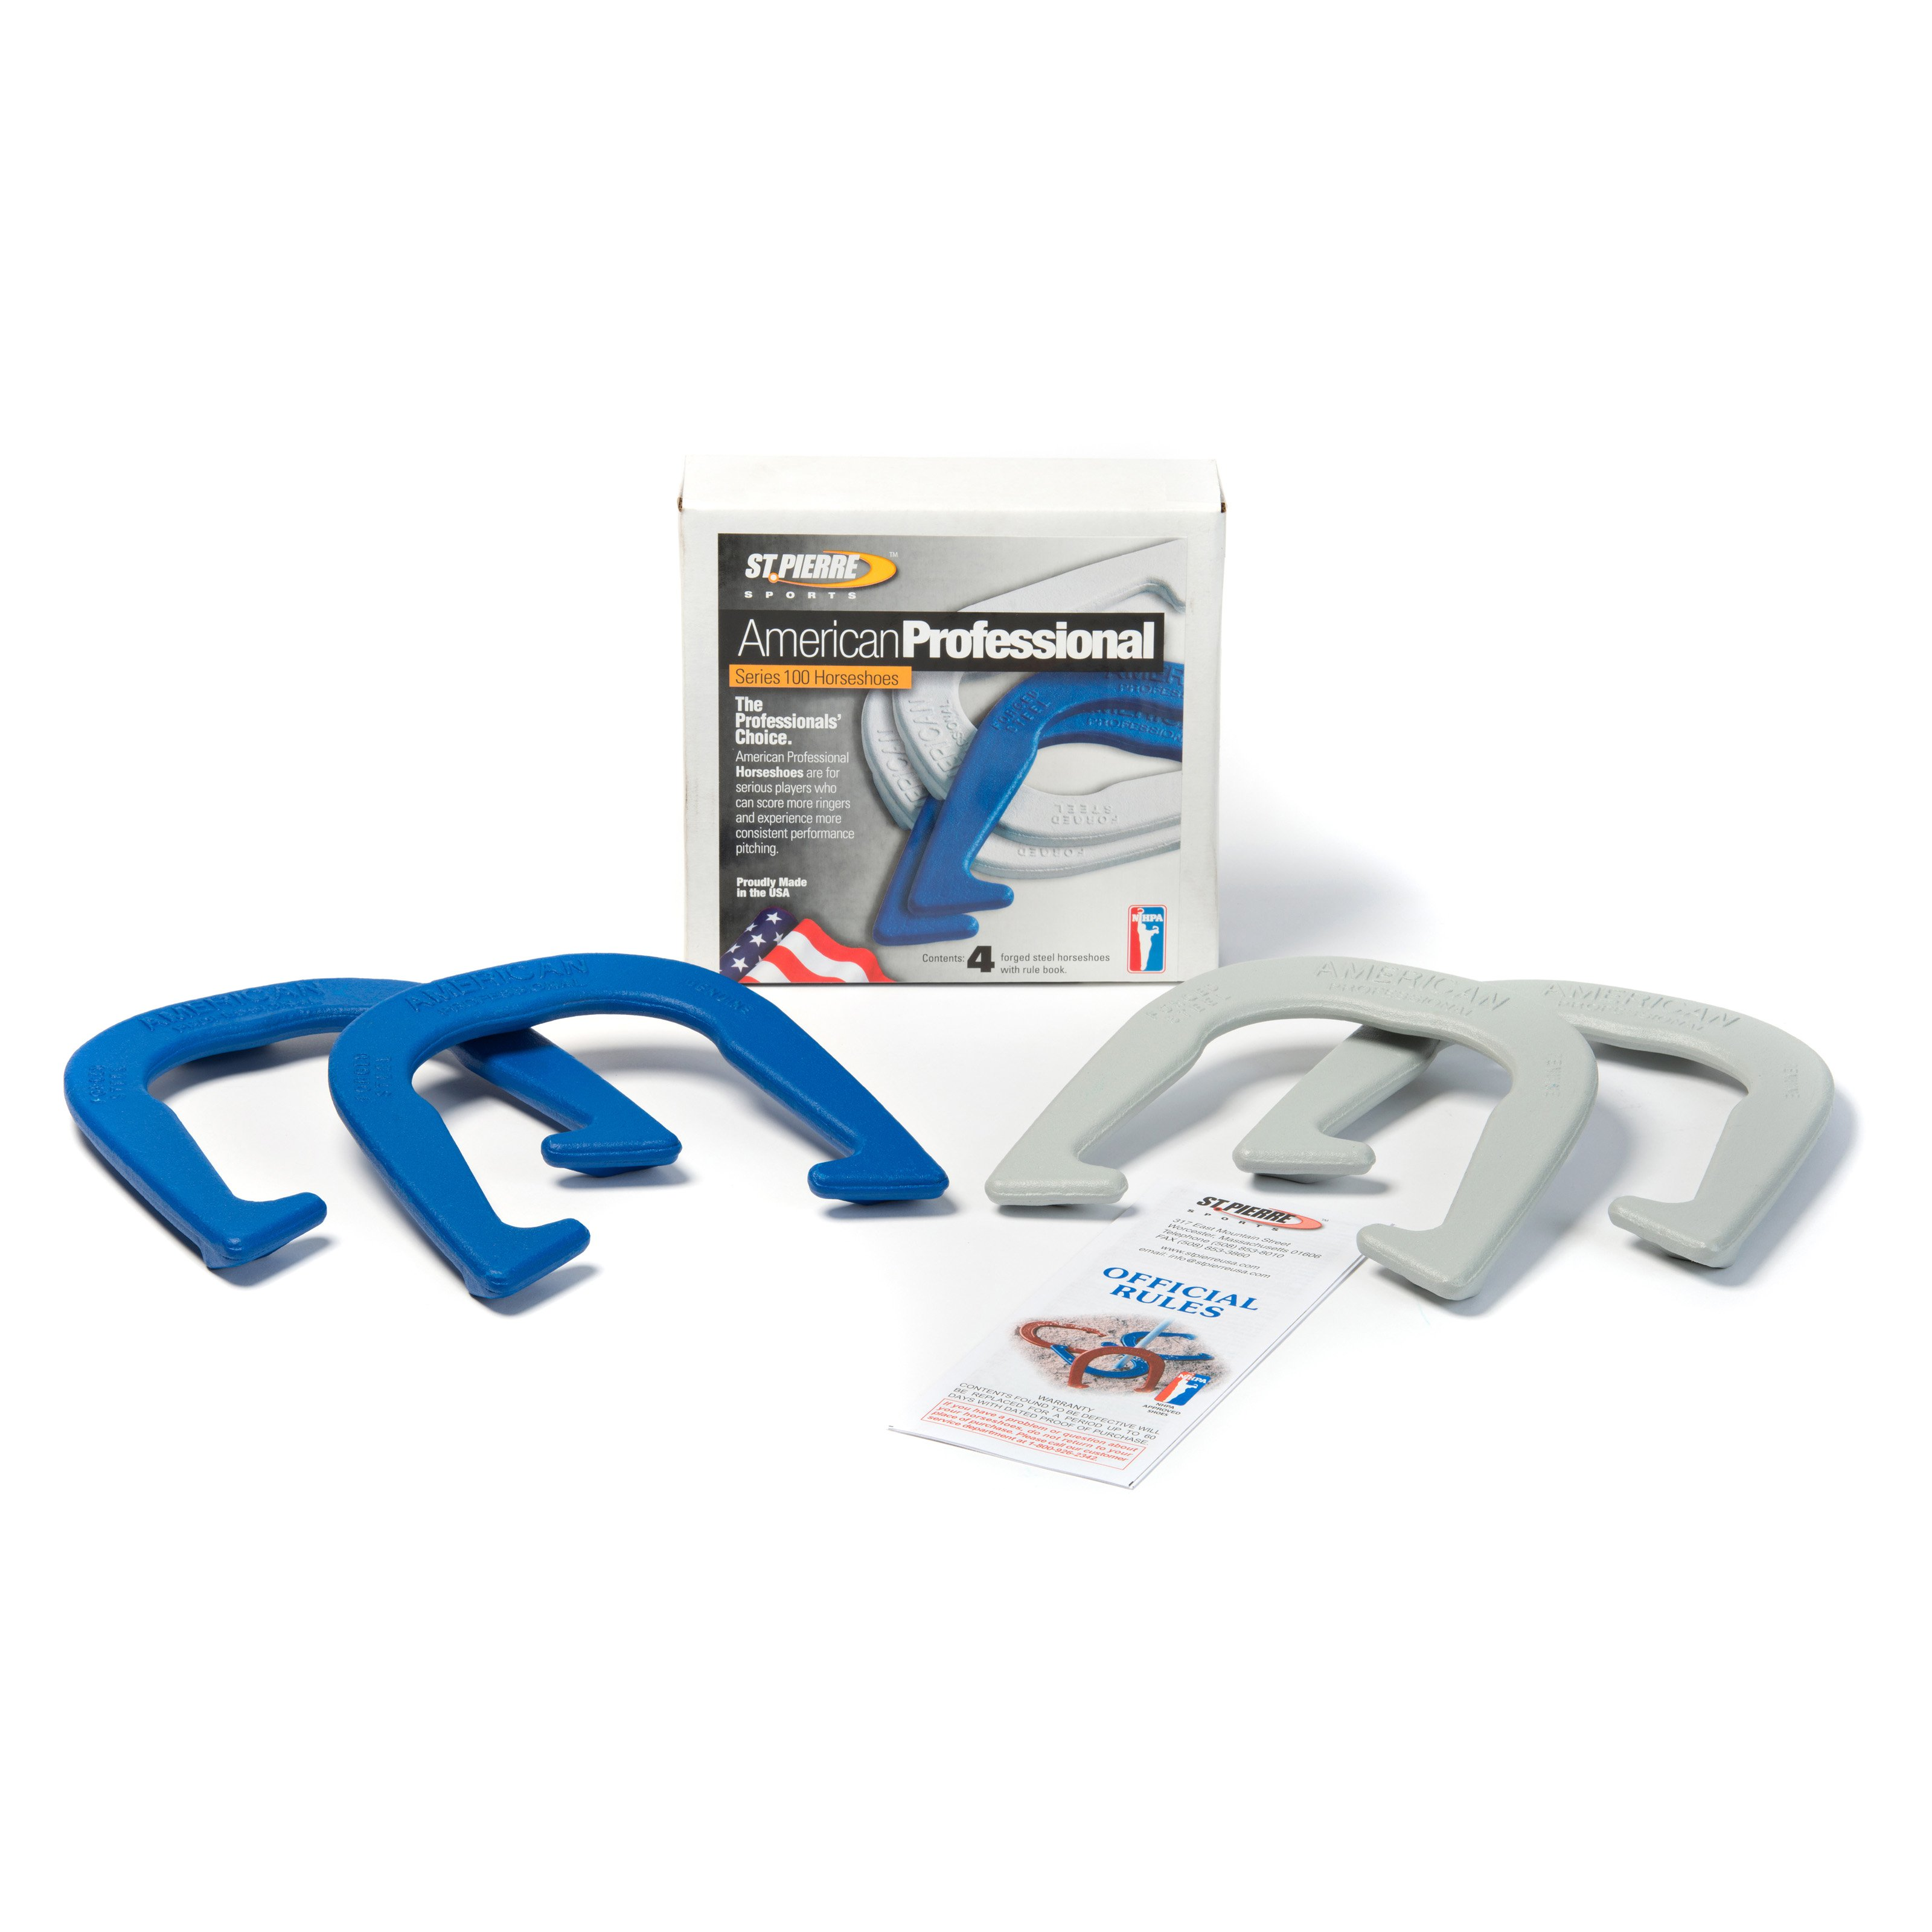 St. Pierre American Professional Horseshoe Set by St Pierre Sports